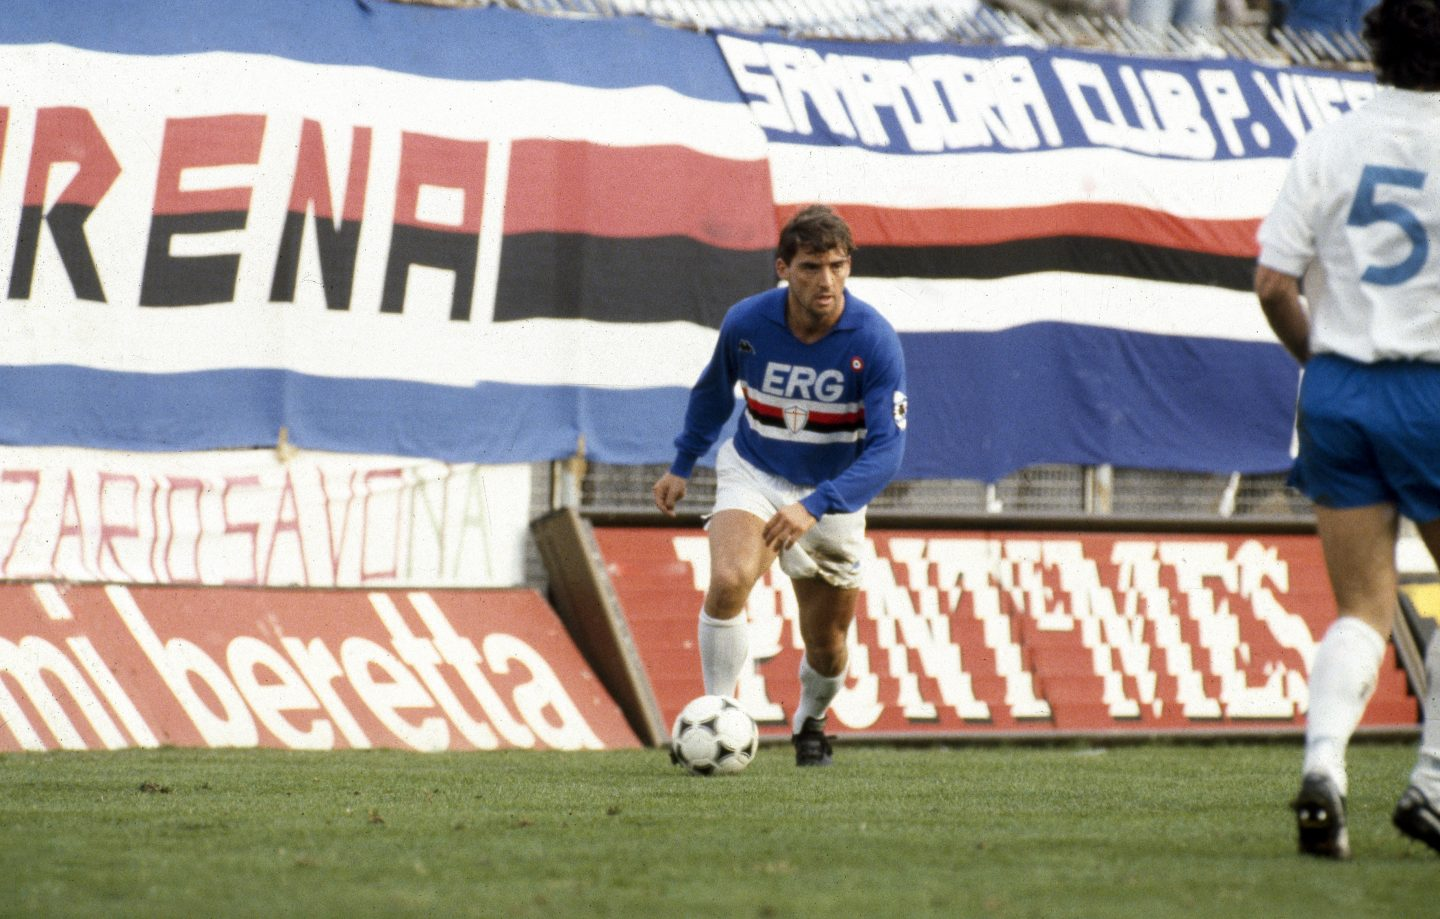 Great Reputations: When Sampdoria shocked the system